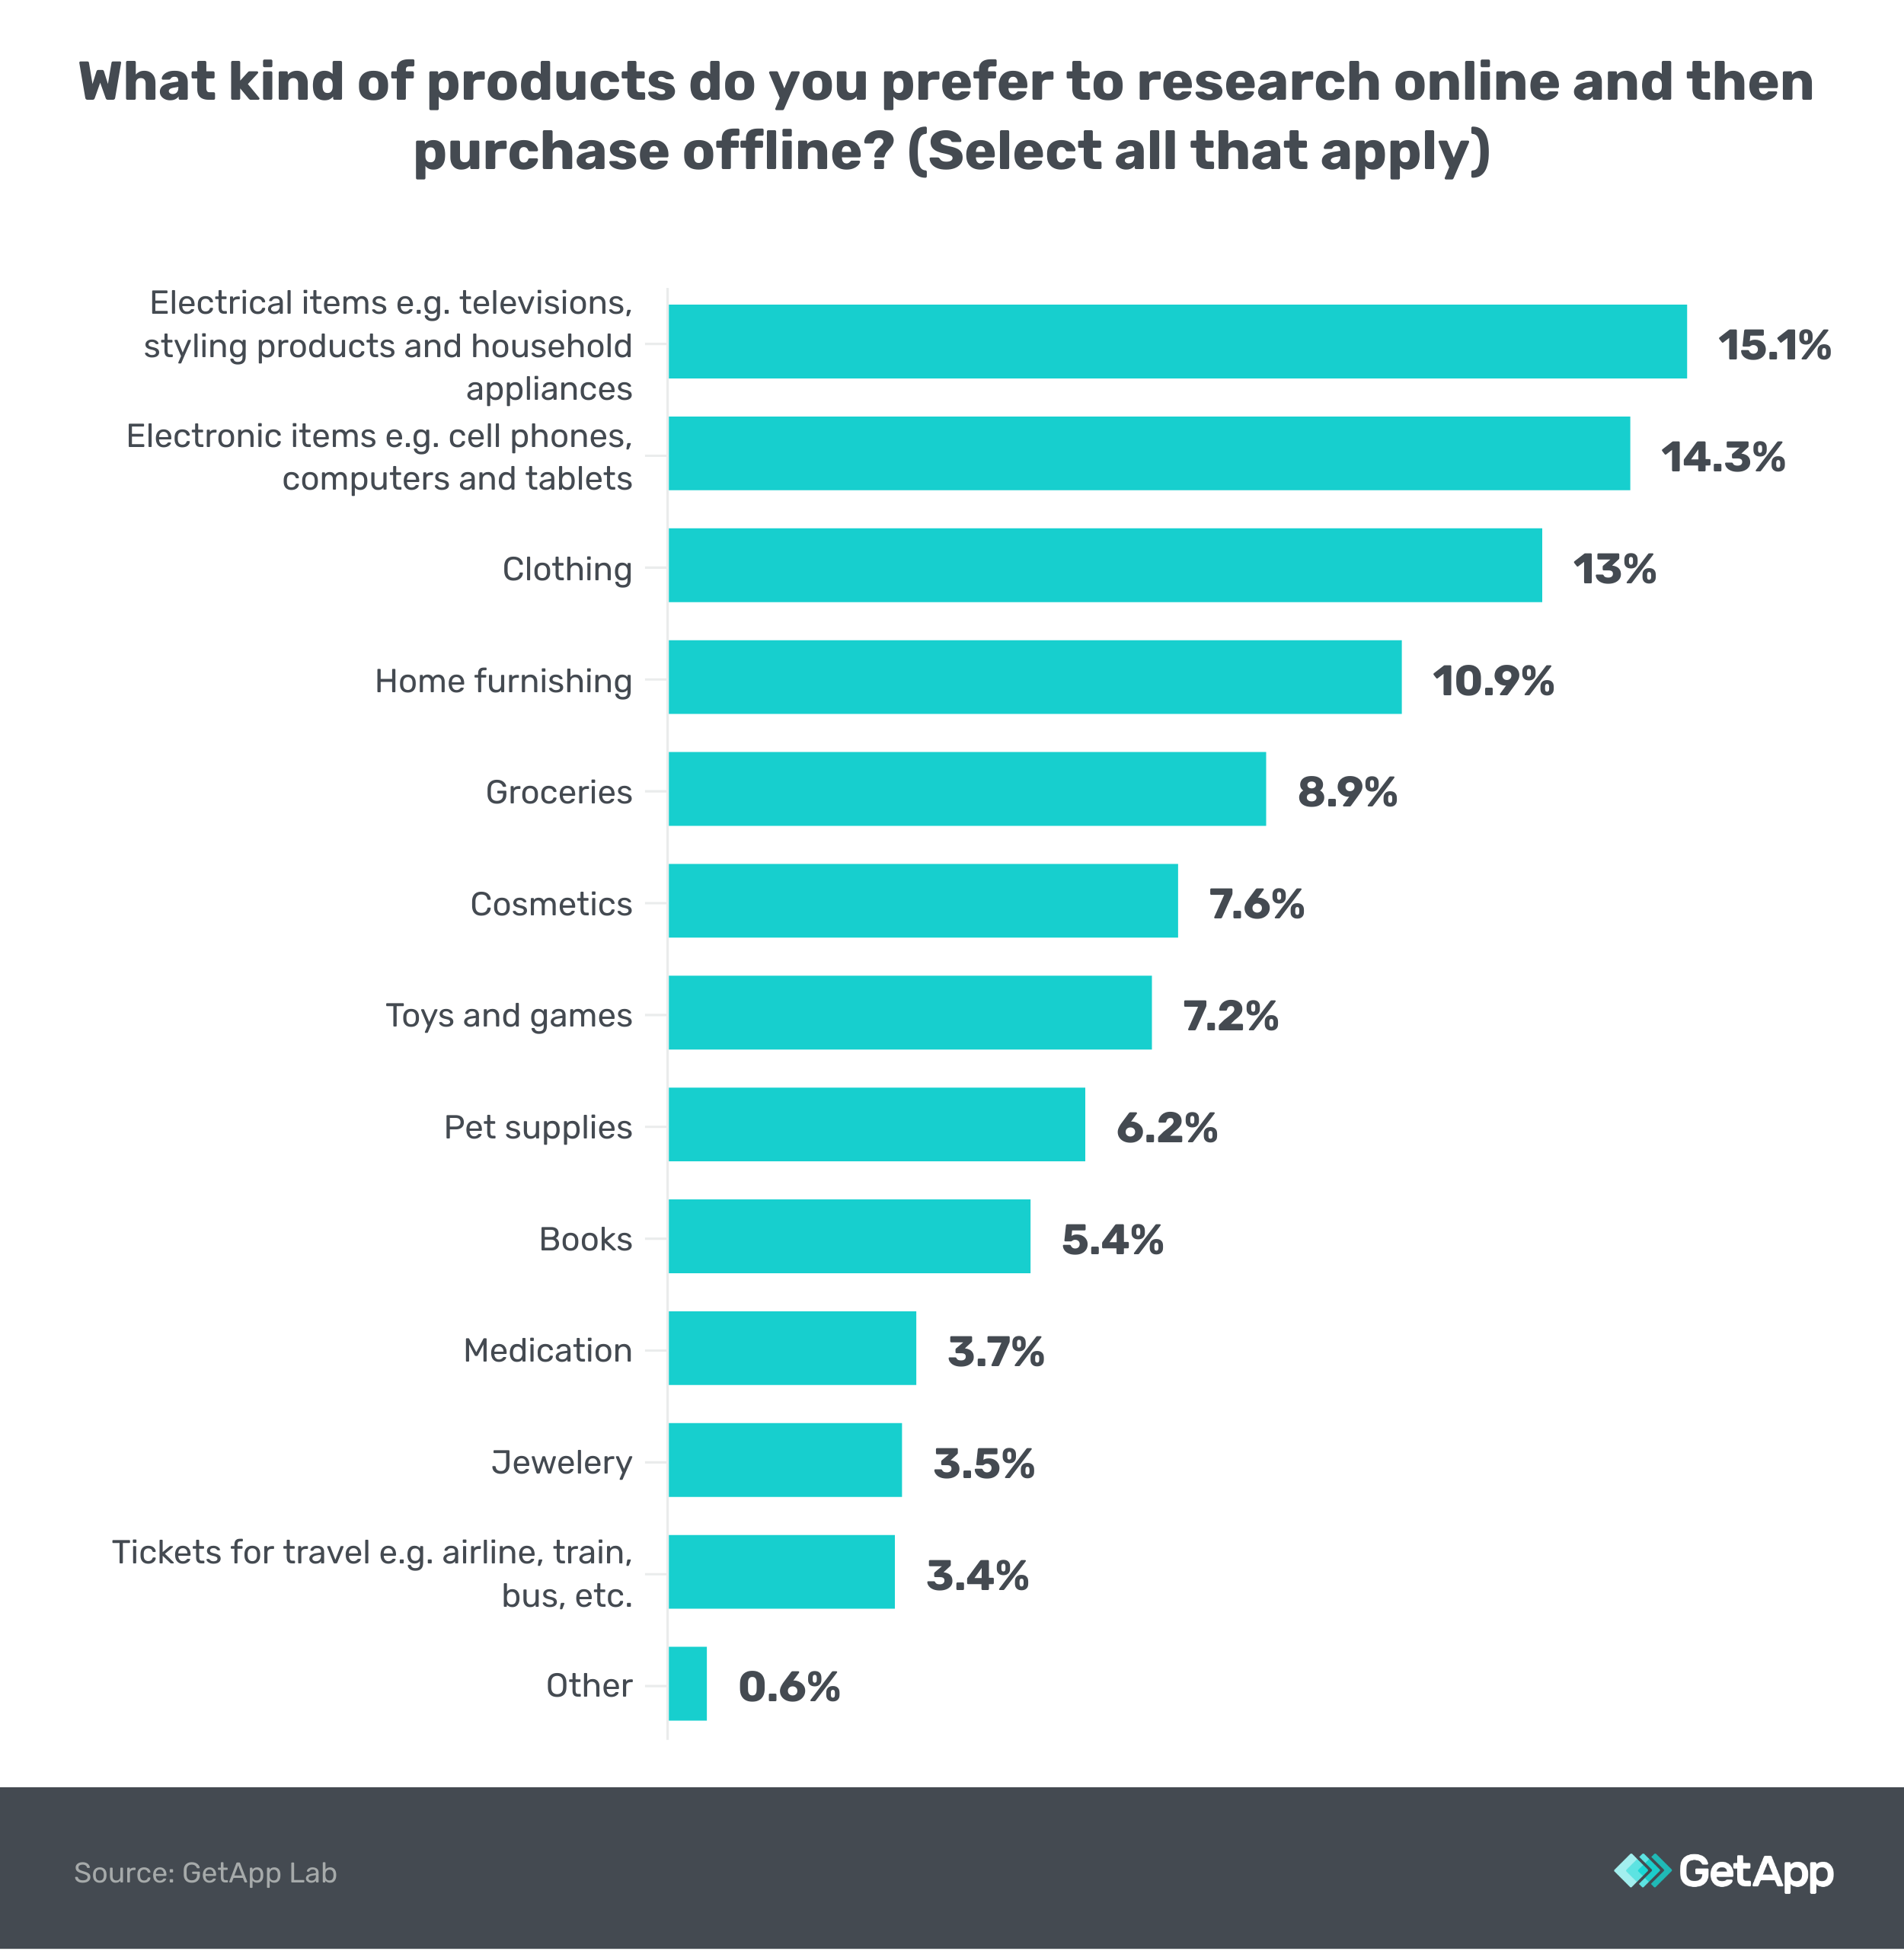 What kind of products do you research online but buy offline?